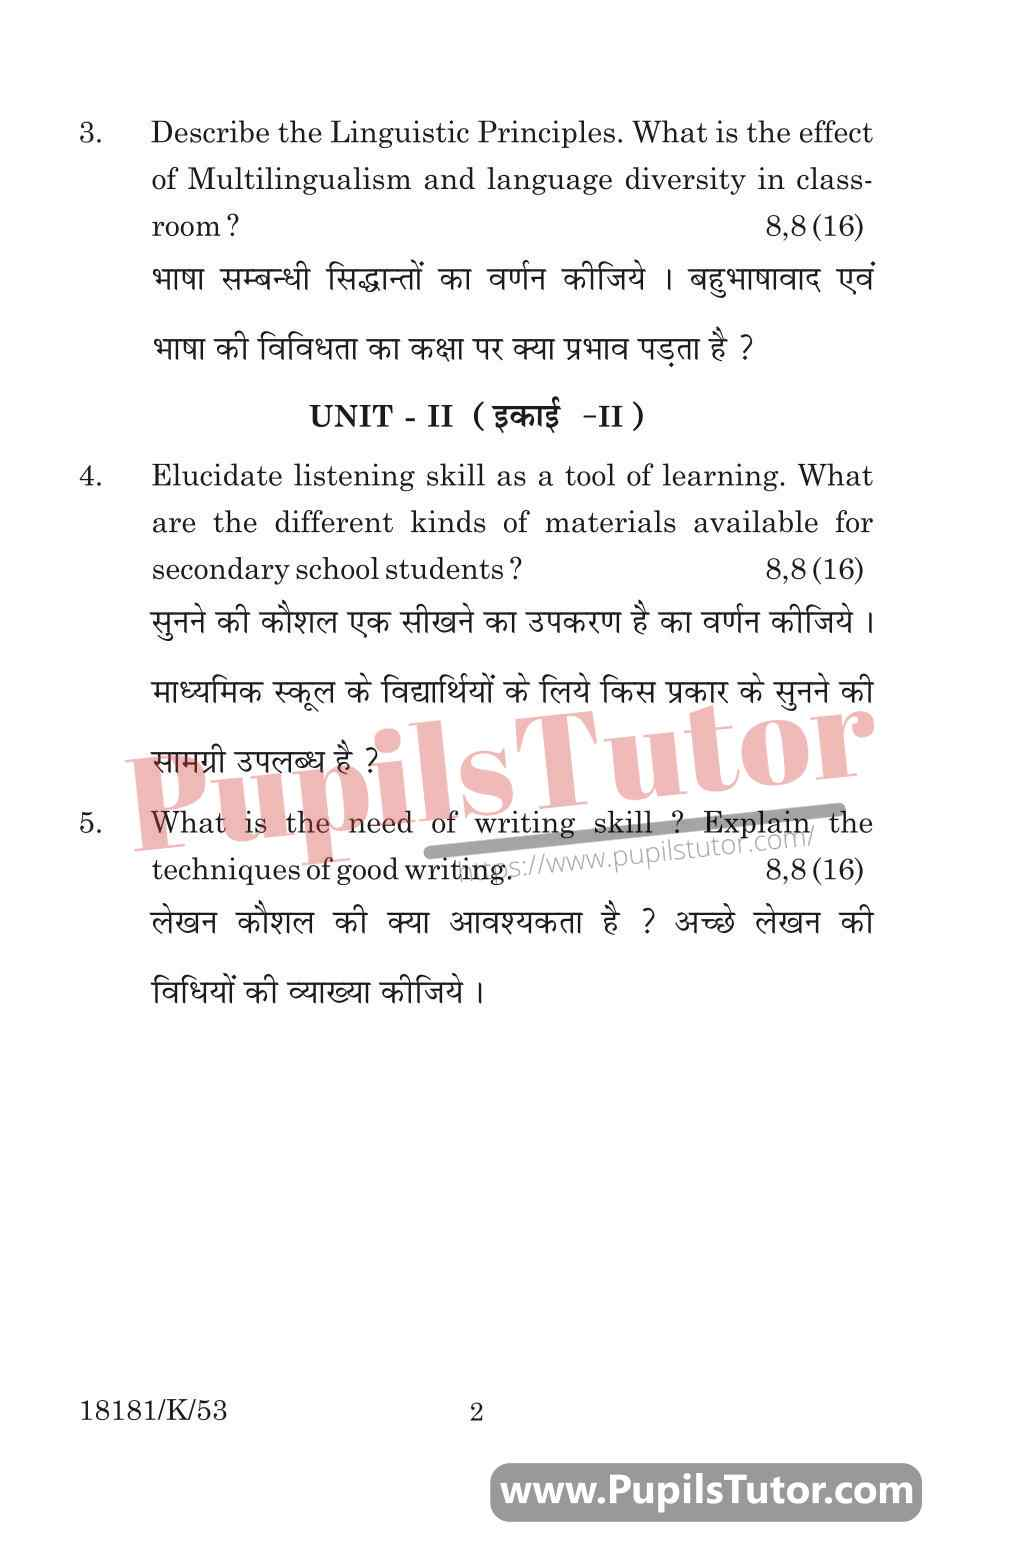 KUK (Kurukshetra University, Haryana) Language Across The Curricular Question Paper 2020 For B.Ed 1st And 2nd Year And All The 4 Semesters In English And Hindi Medium Free Download PDF - Page 2 - www.pupilstutor.com